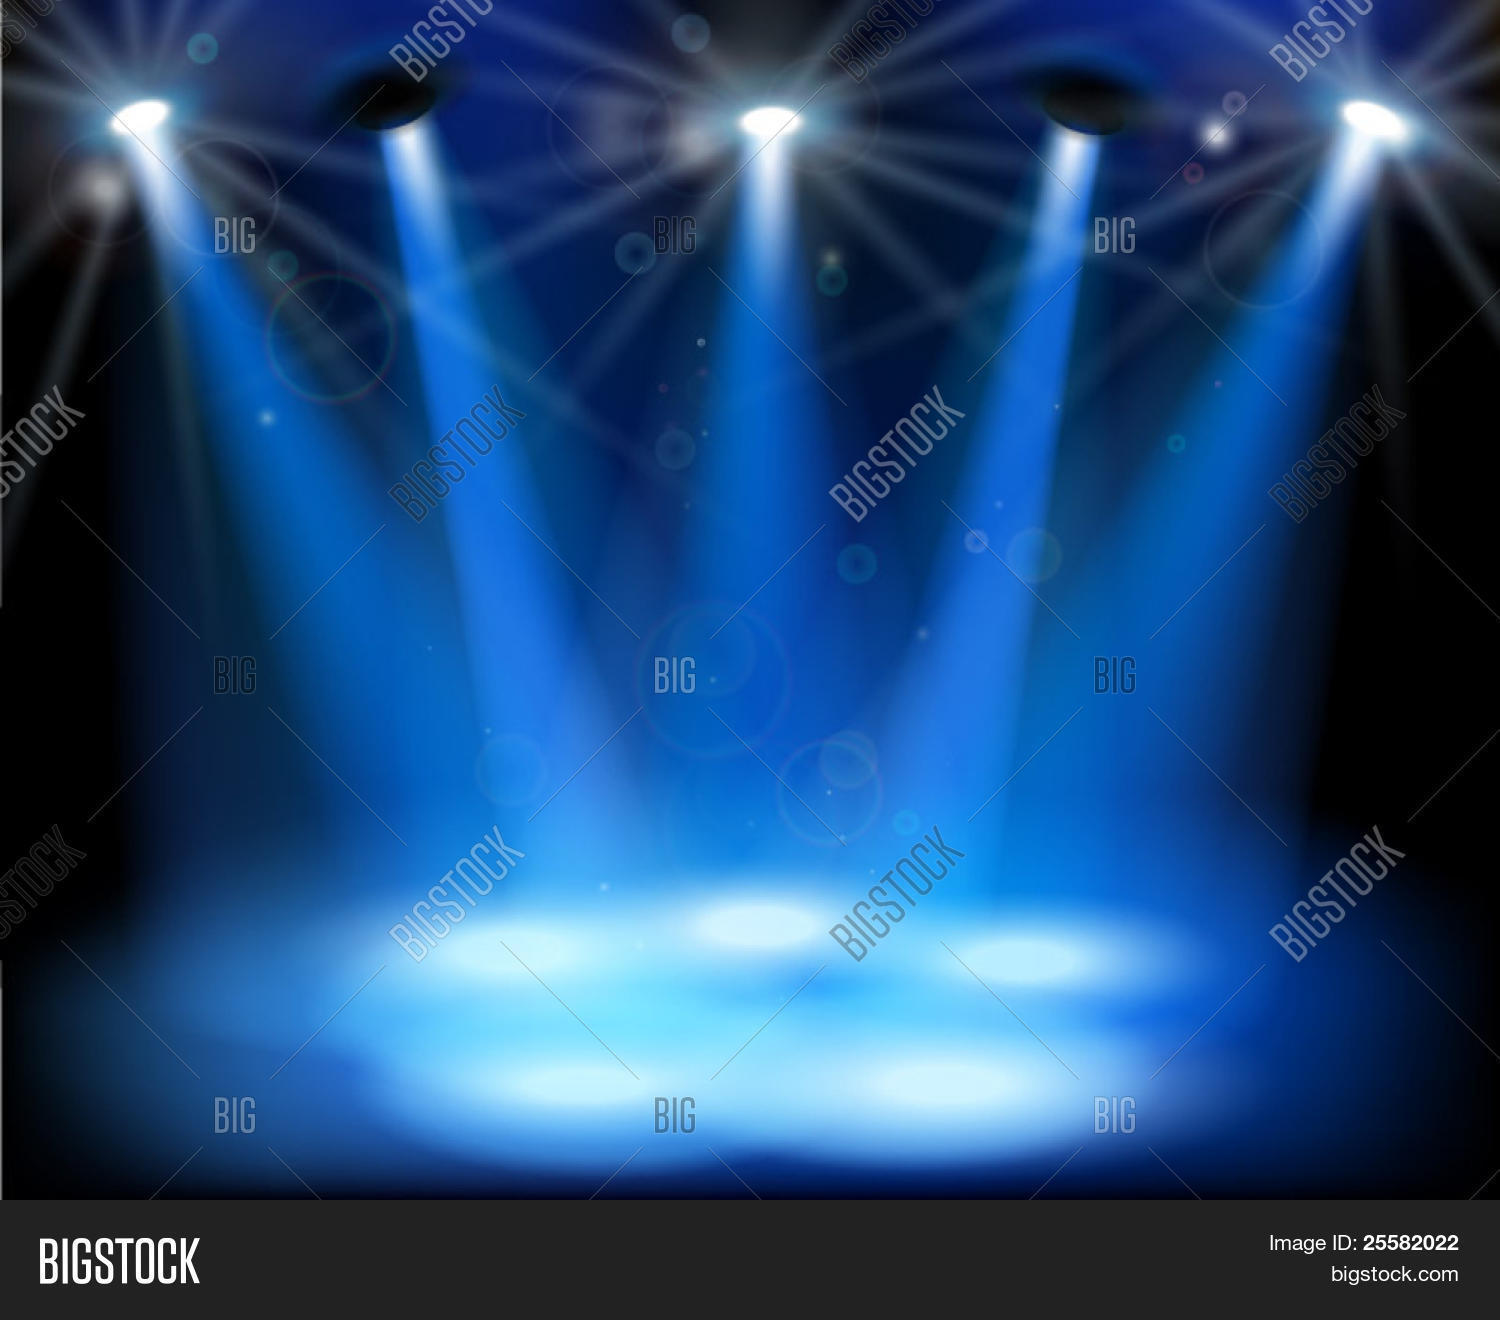 Stage lights. Vector illustration. Stock Vector & Stock ...